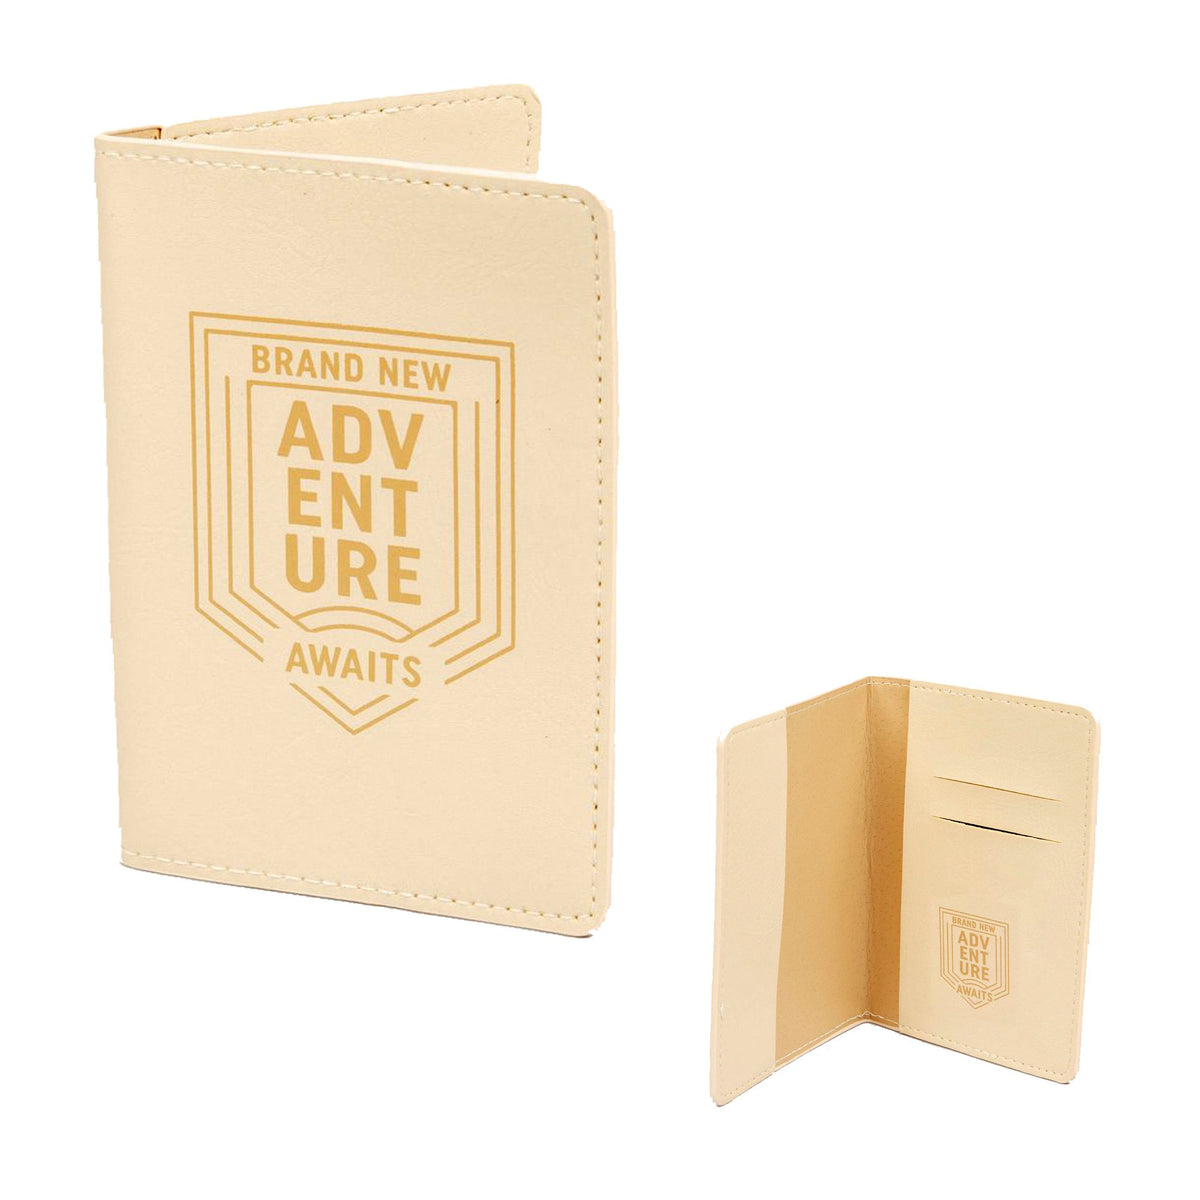 Light Brown leatherette Passport Cover